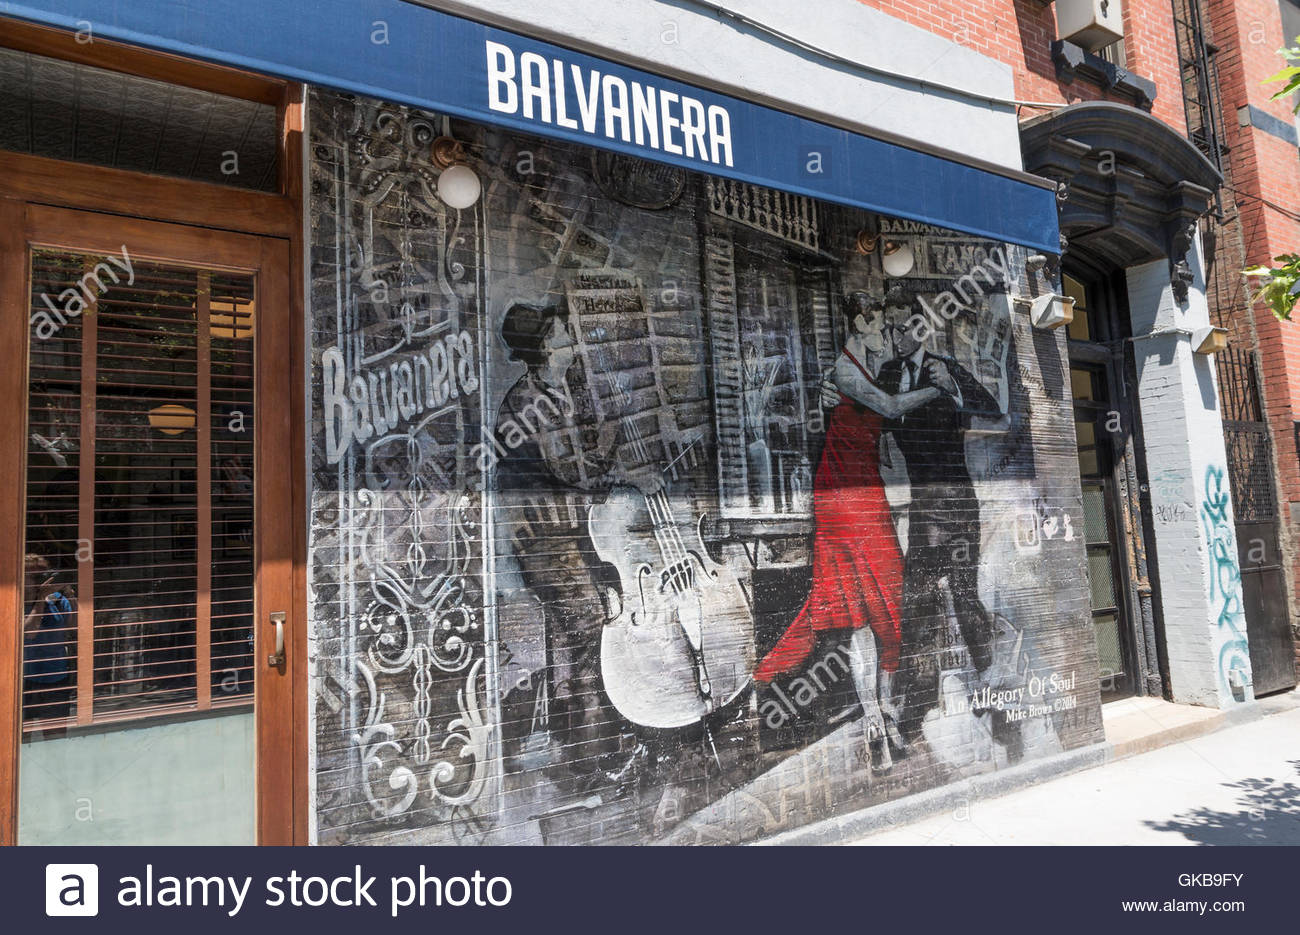 Entrance and wall of Balvanera restaurant in New York with street art graffiti mural showing & Restaurant Wall Art Stock Photos u0026 Restaurant Wall Art Stock Images ...